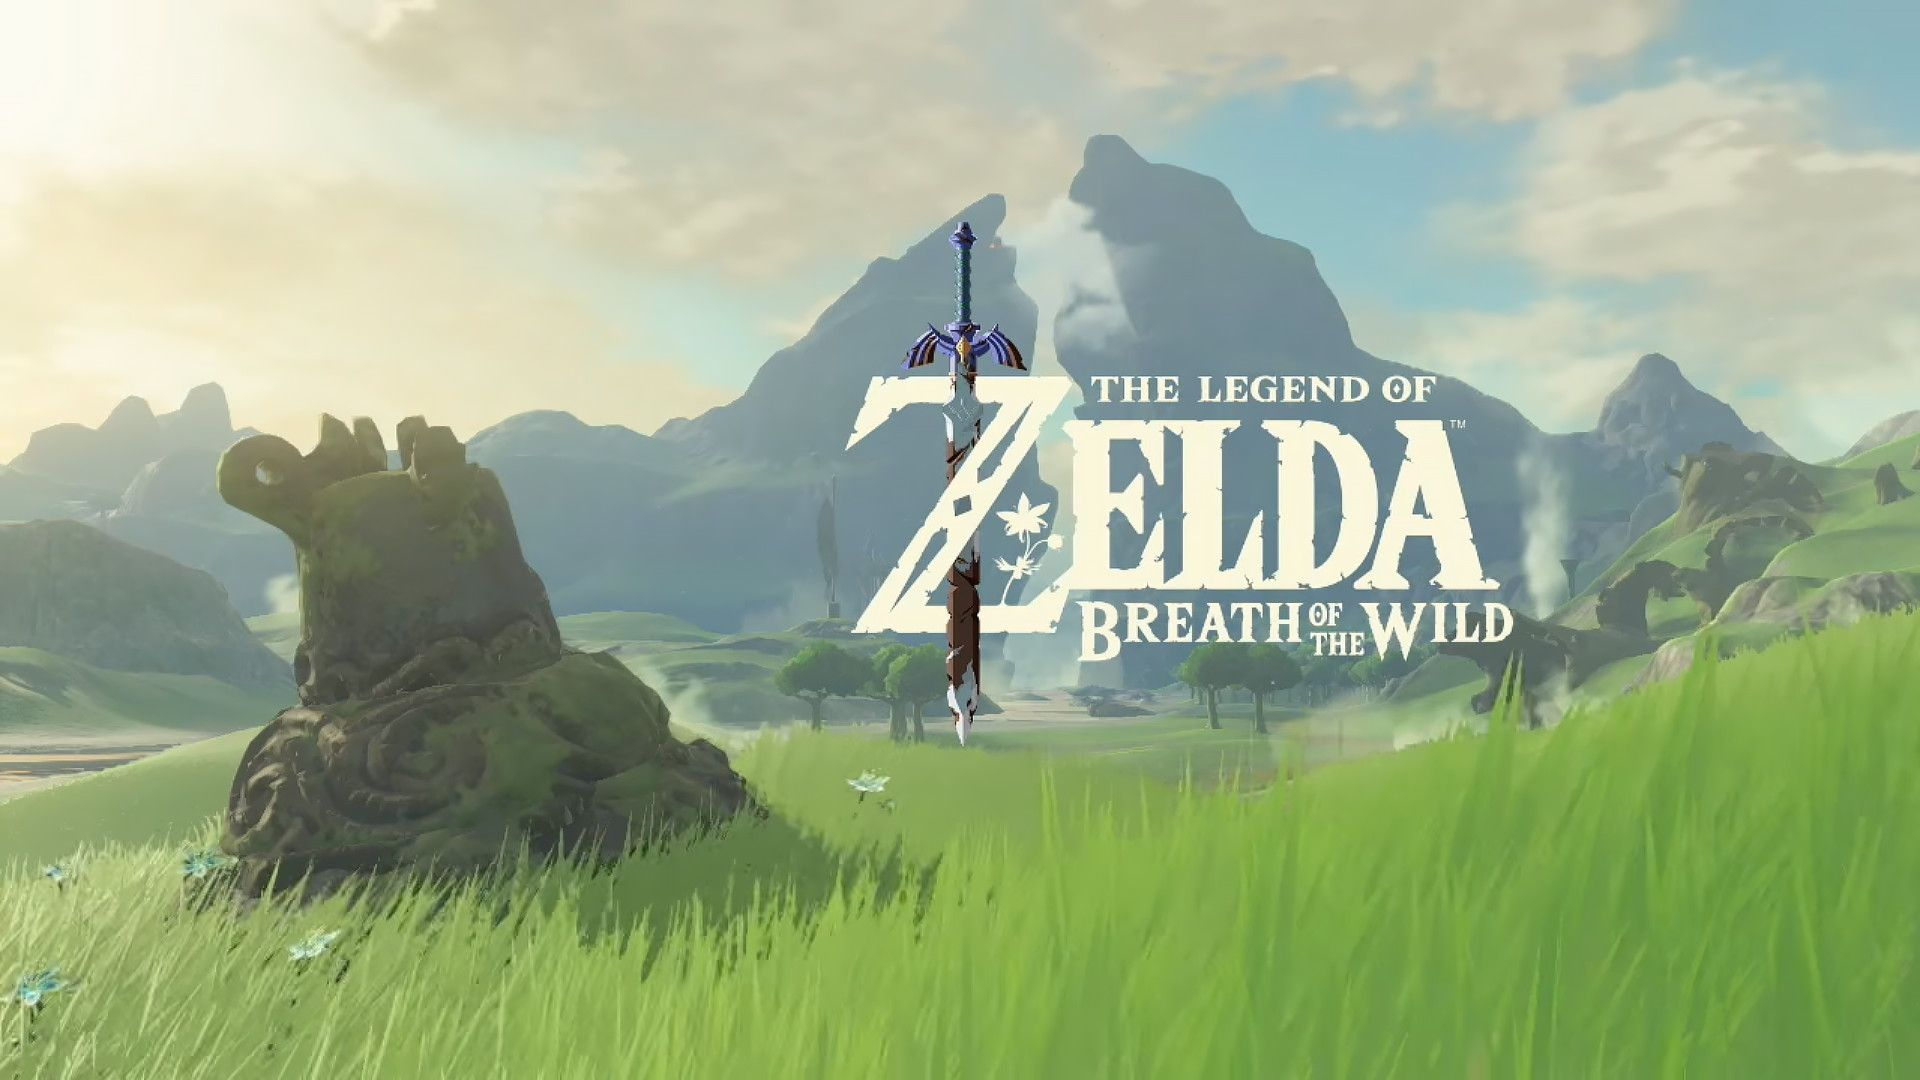 54 The Legend Of Zelda Breath Of The Wild Hd Wallpapers On